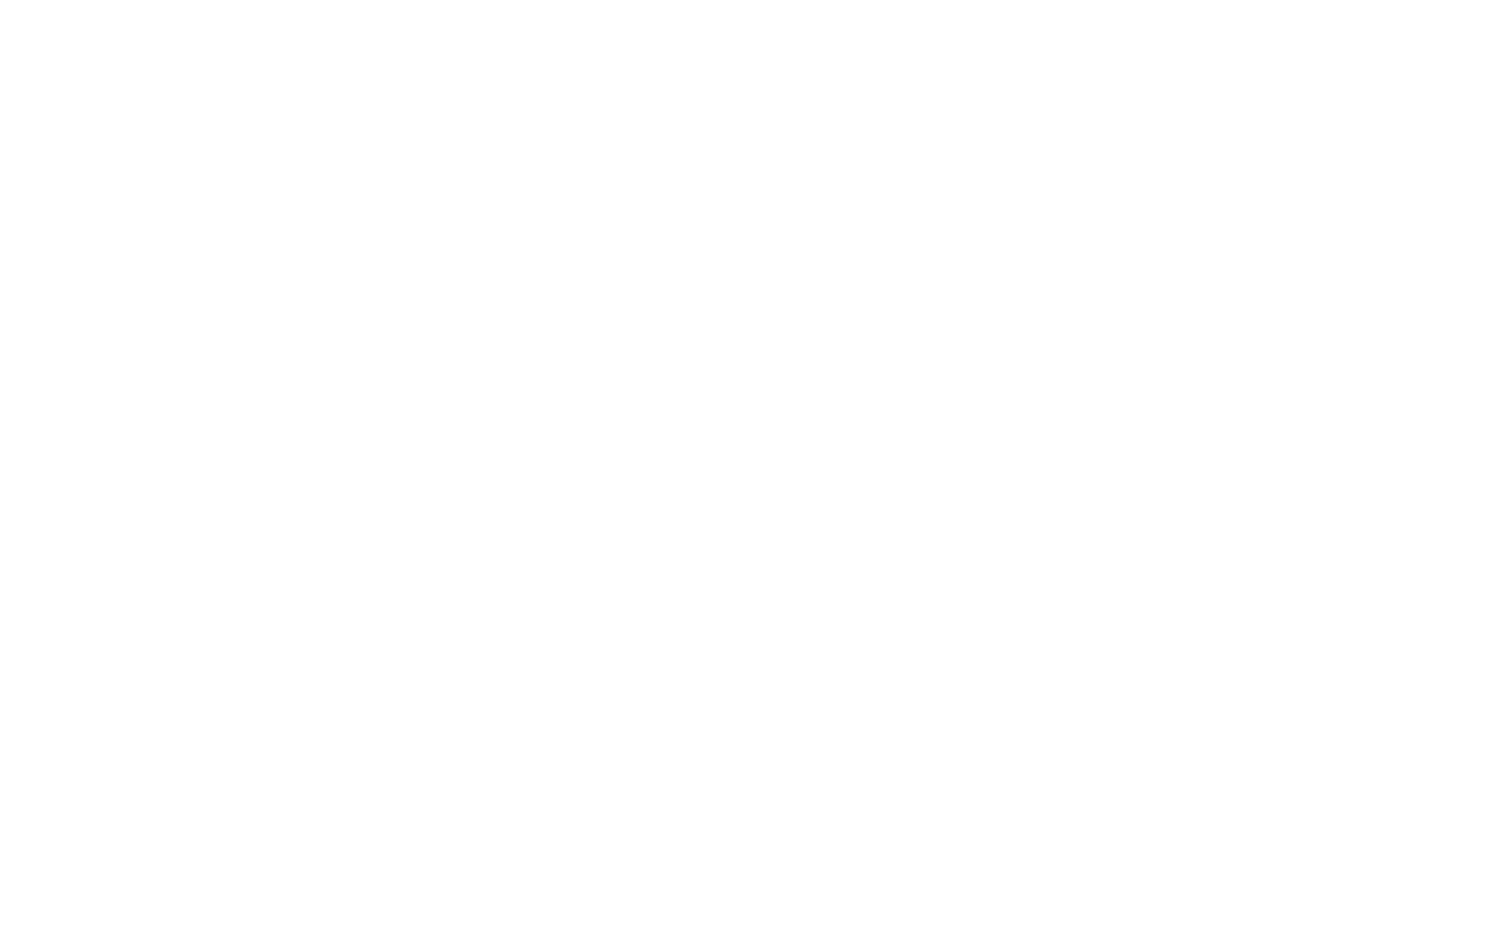 BLUEBIRD FINISHING